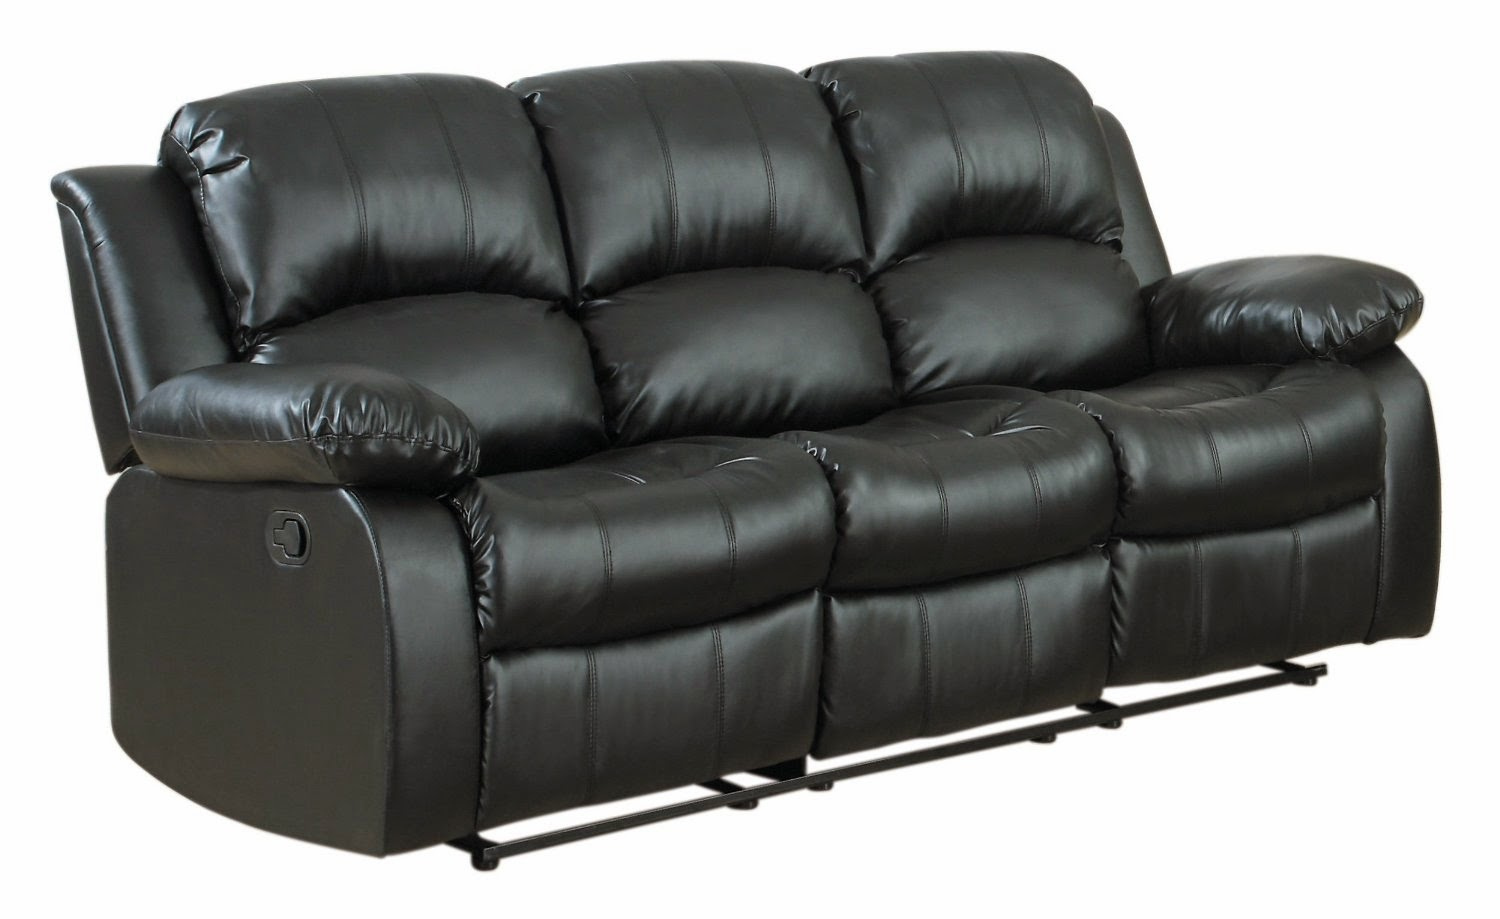 Best Recliner Sofa Brand Recommendation Wanted: Cheap ...